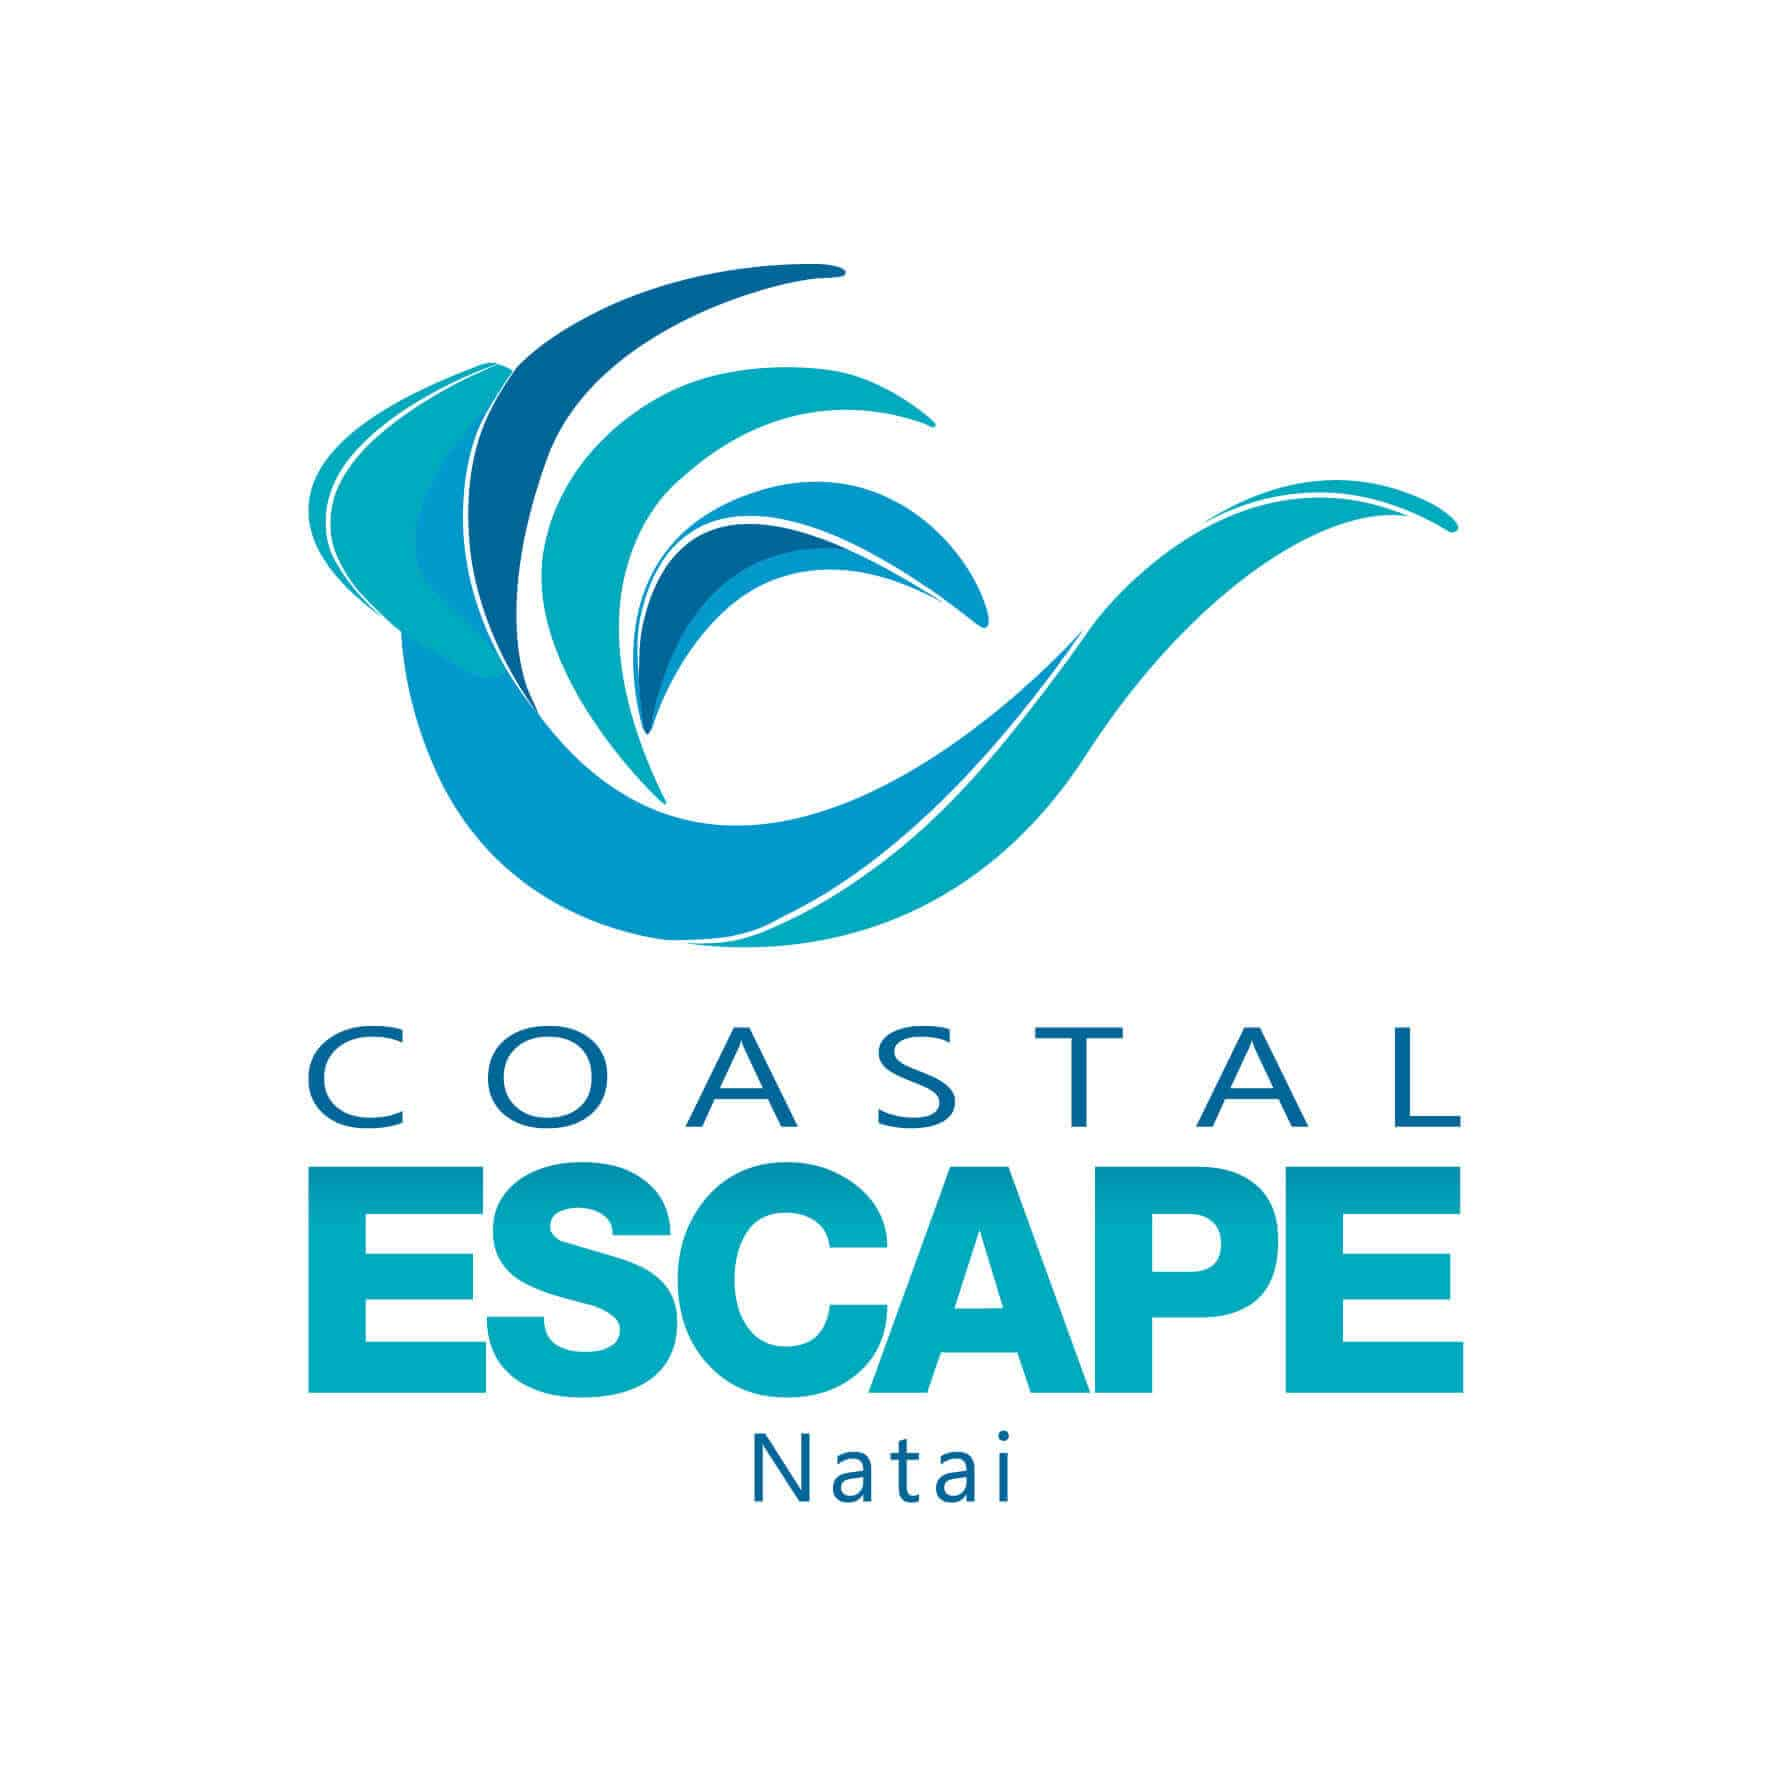 Coastal-escape-natai